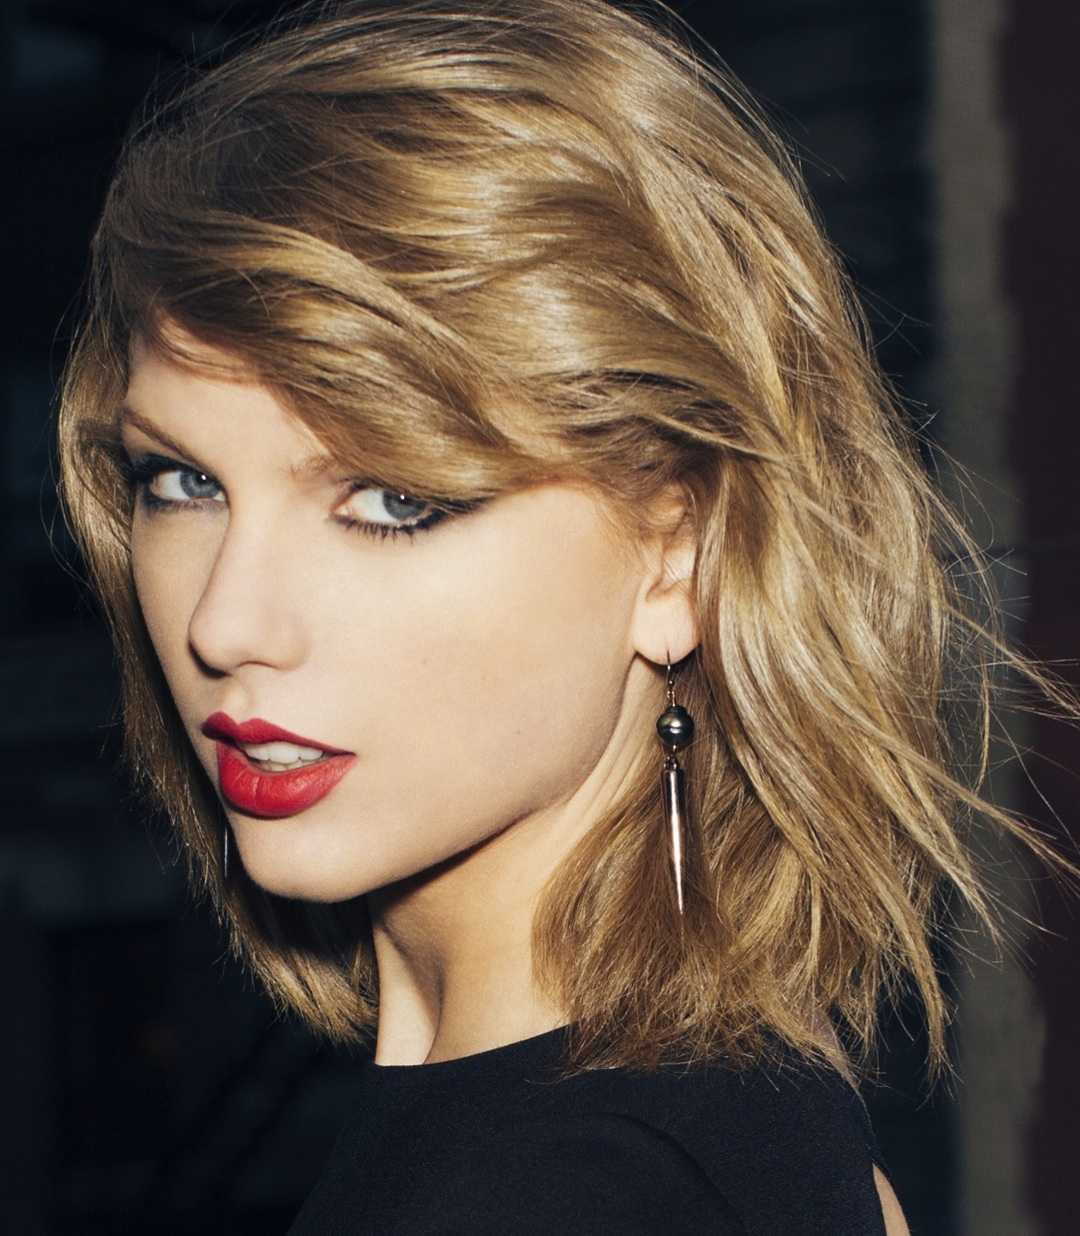 Taylor Swift Fires Back With A Lawsuit Against Radio Host For Sexual Assault | Assault